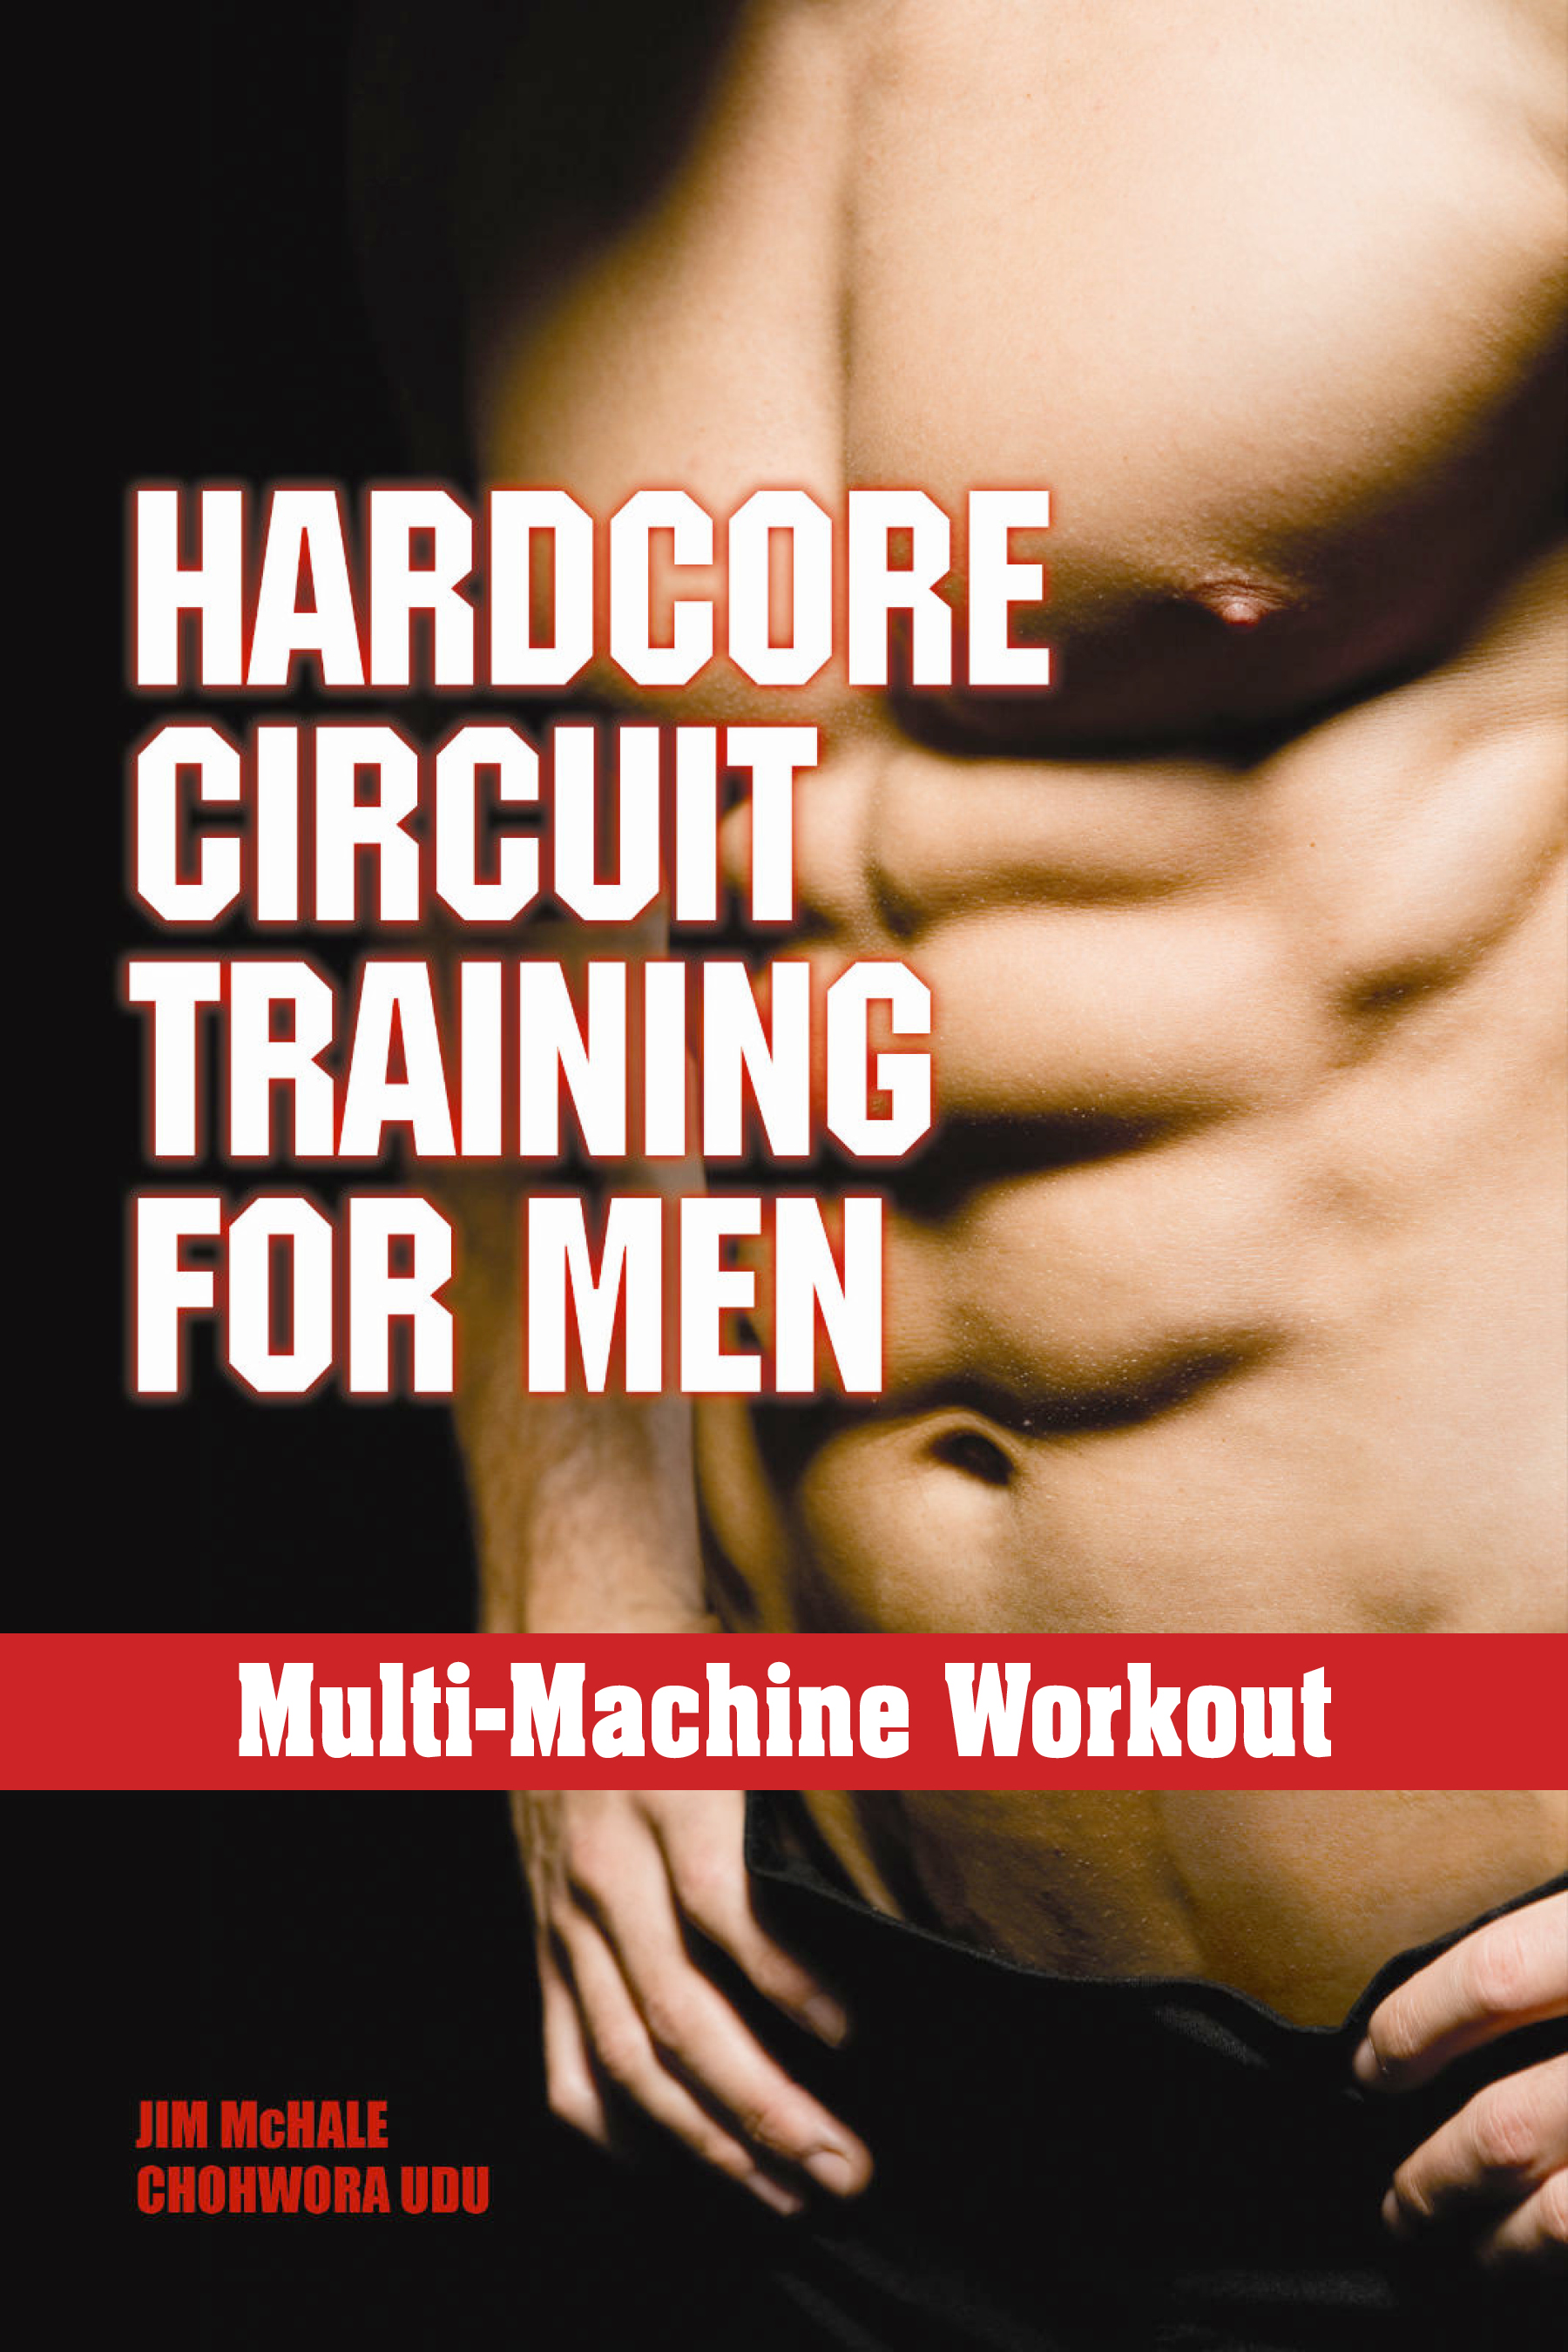 Multi-Machine Workout